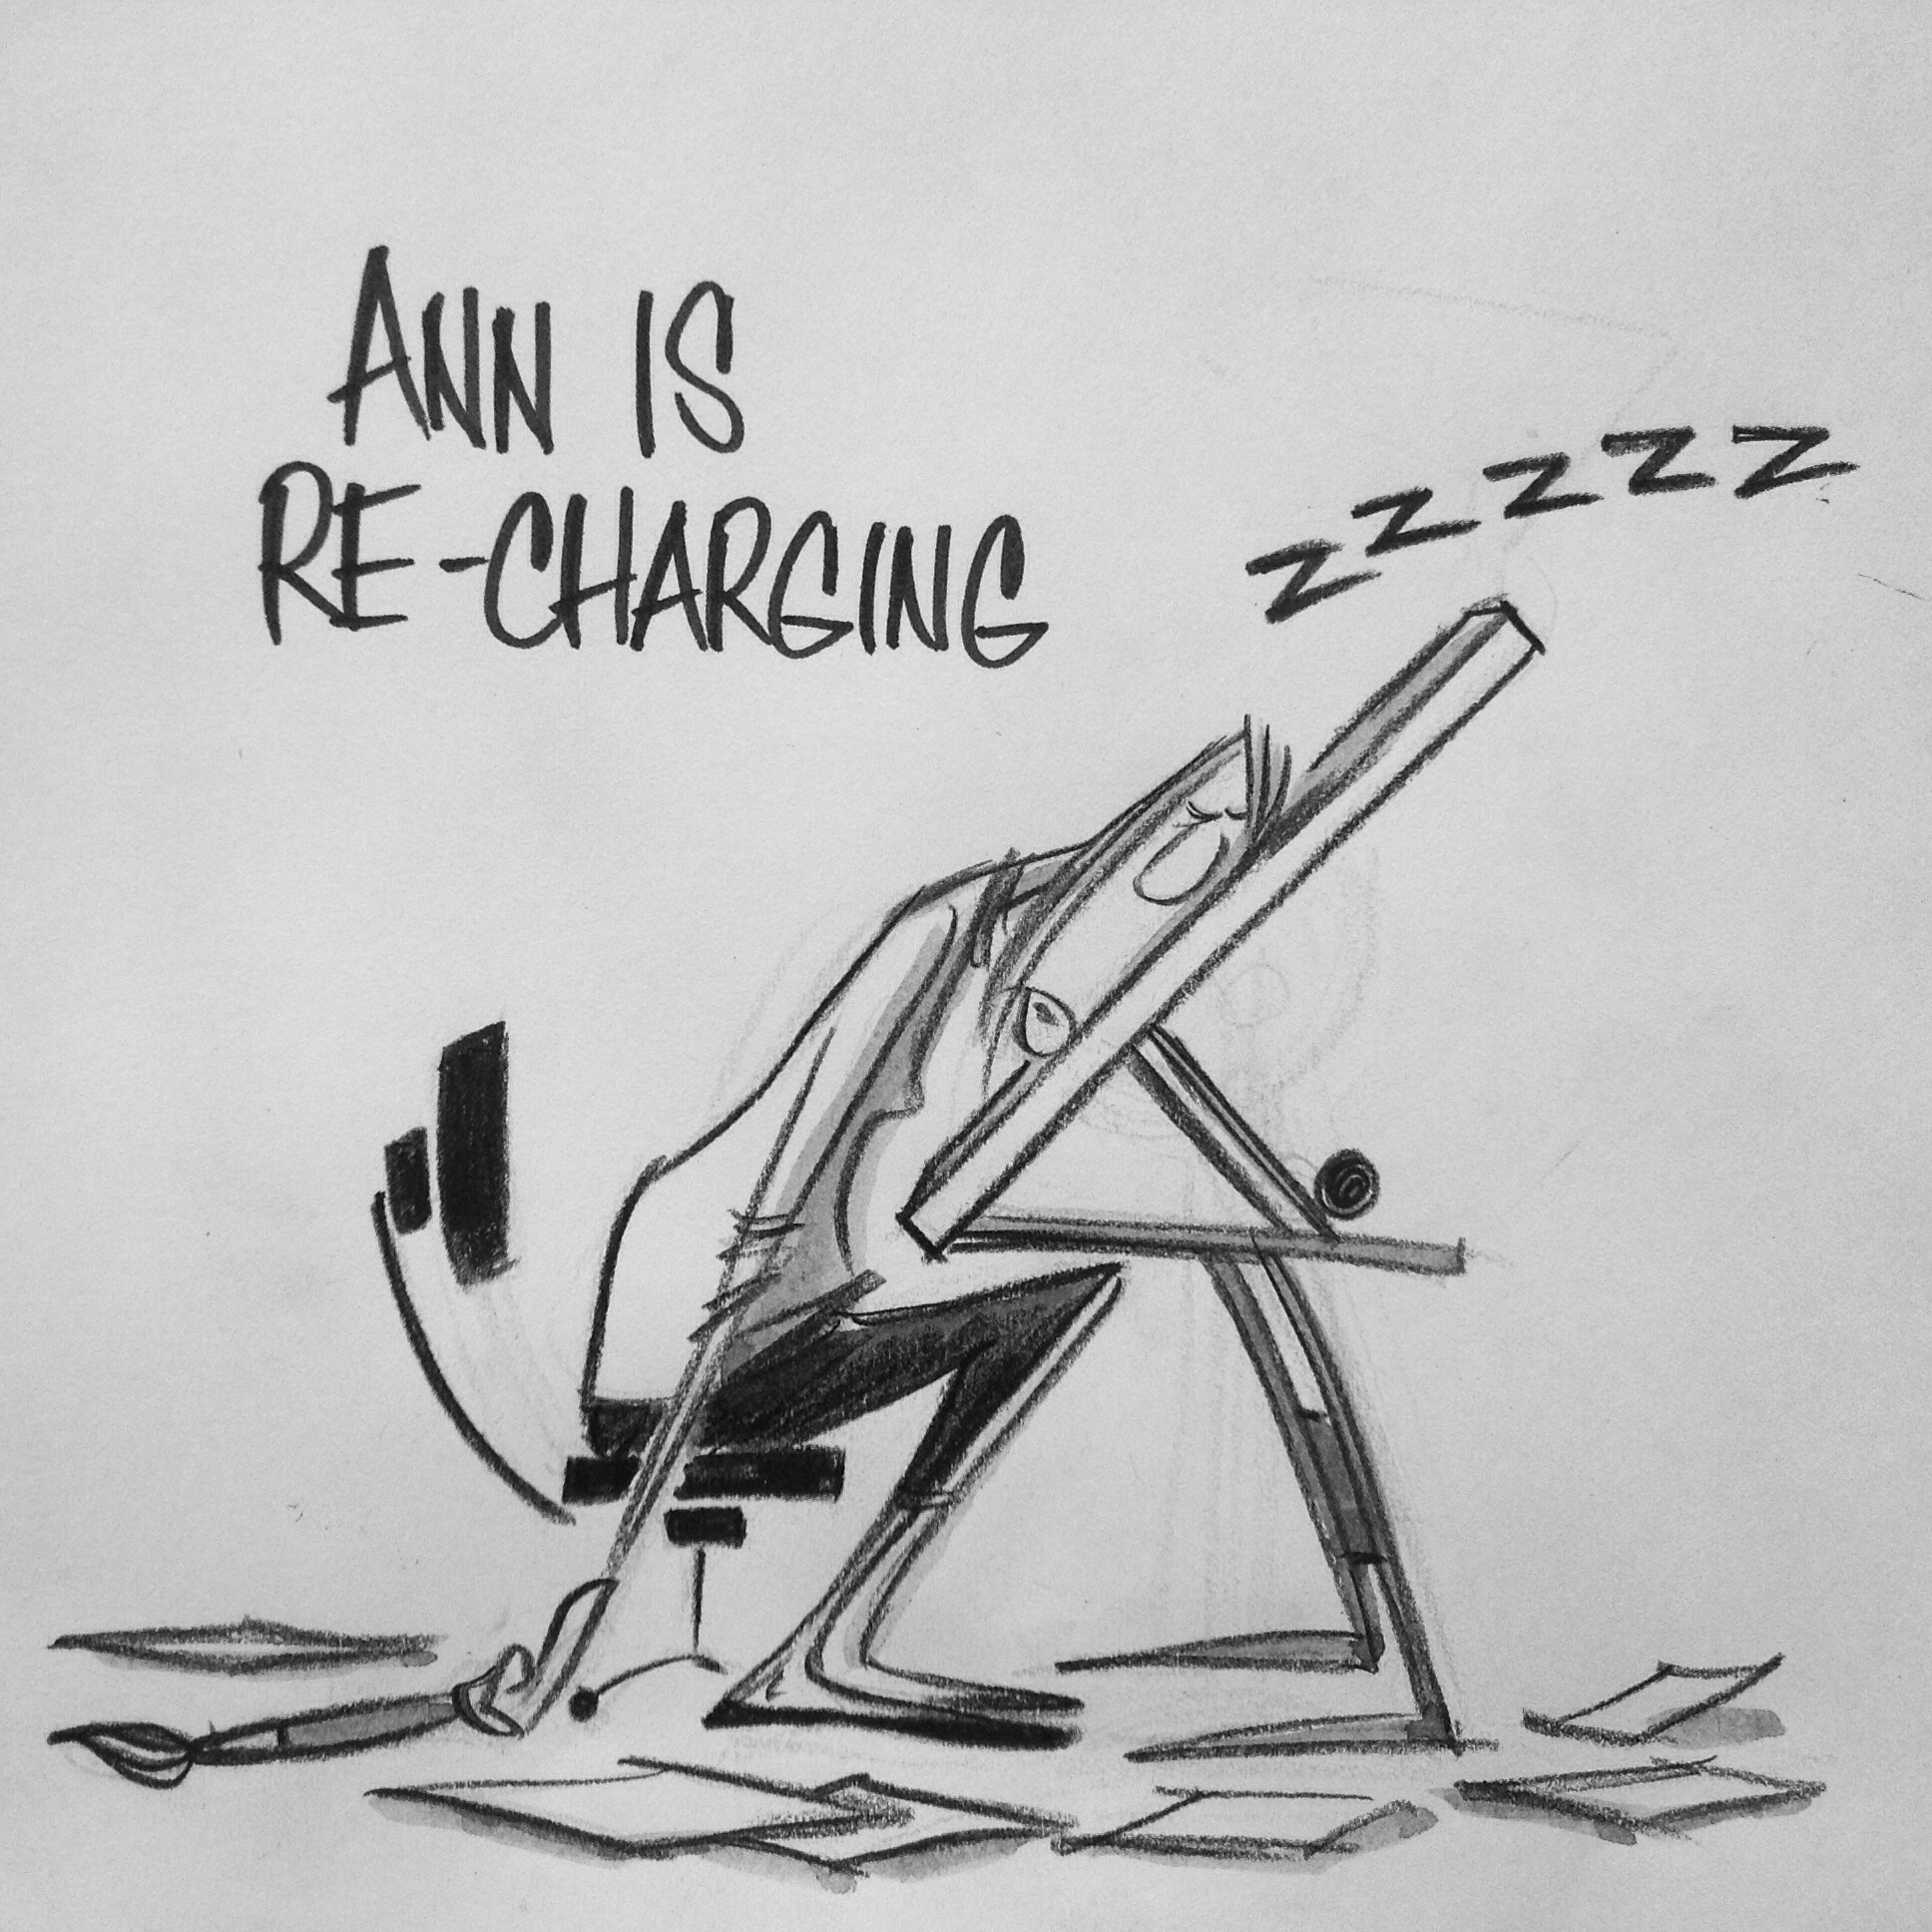 Ann is re-charging